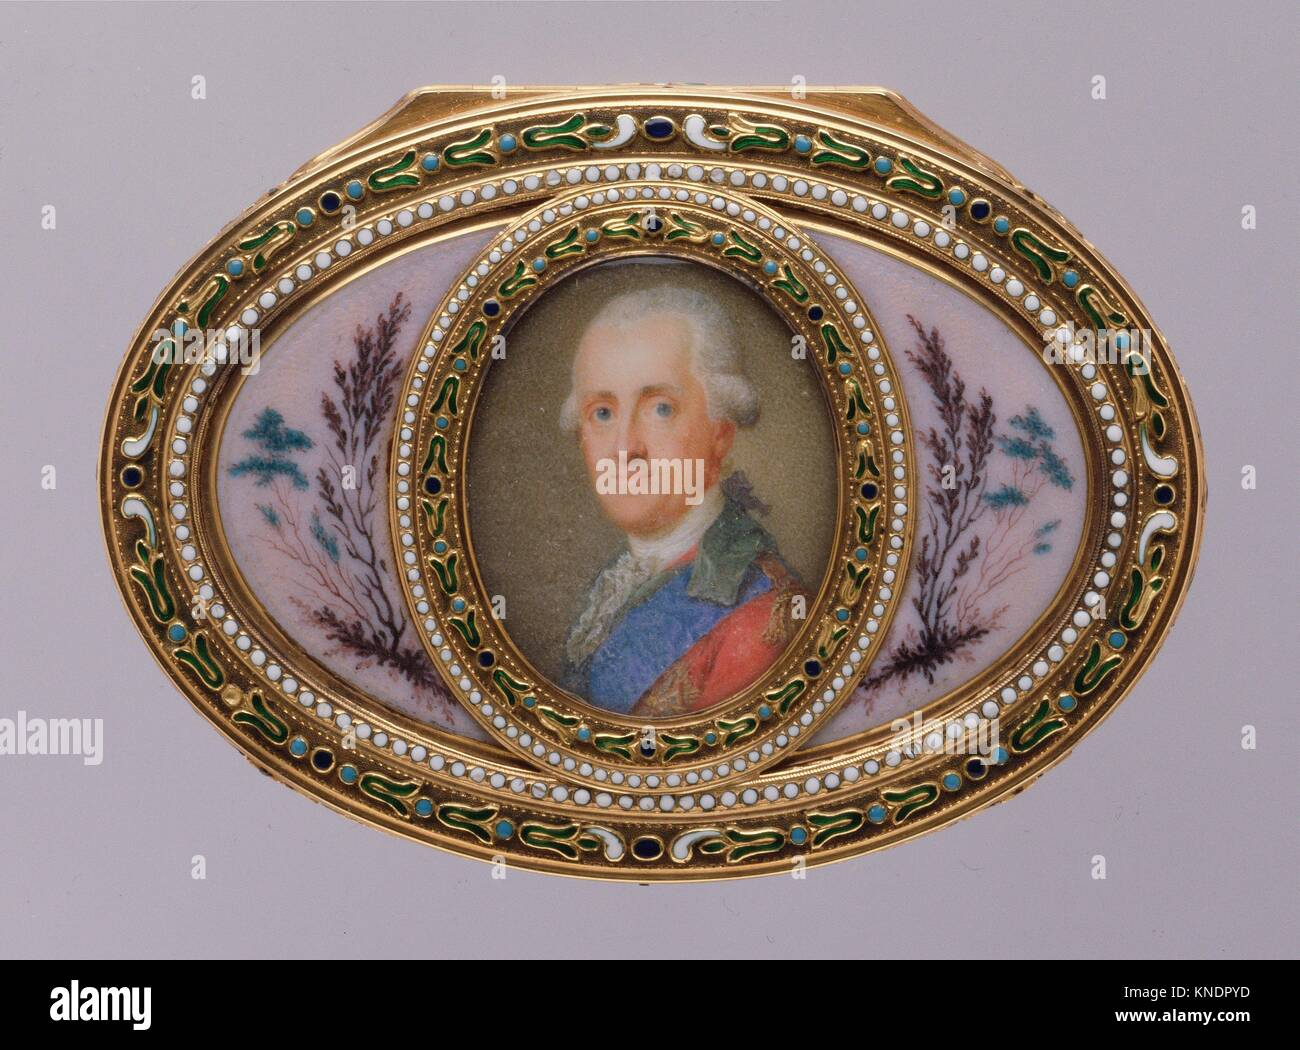 Snuffbox with portrait of a man, almost certainly Prinz Karl von Sachsen (1733-1796). Maker: Jean-Joseph Barrière - Stock Image